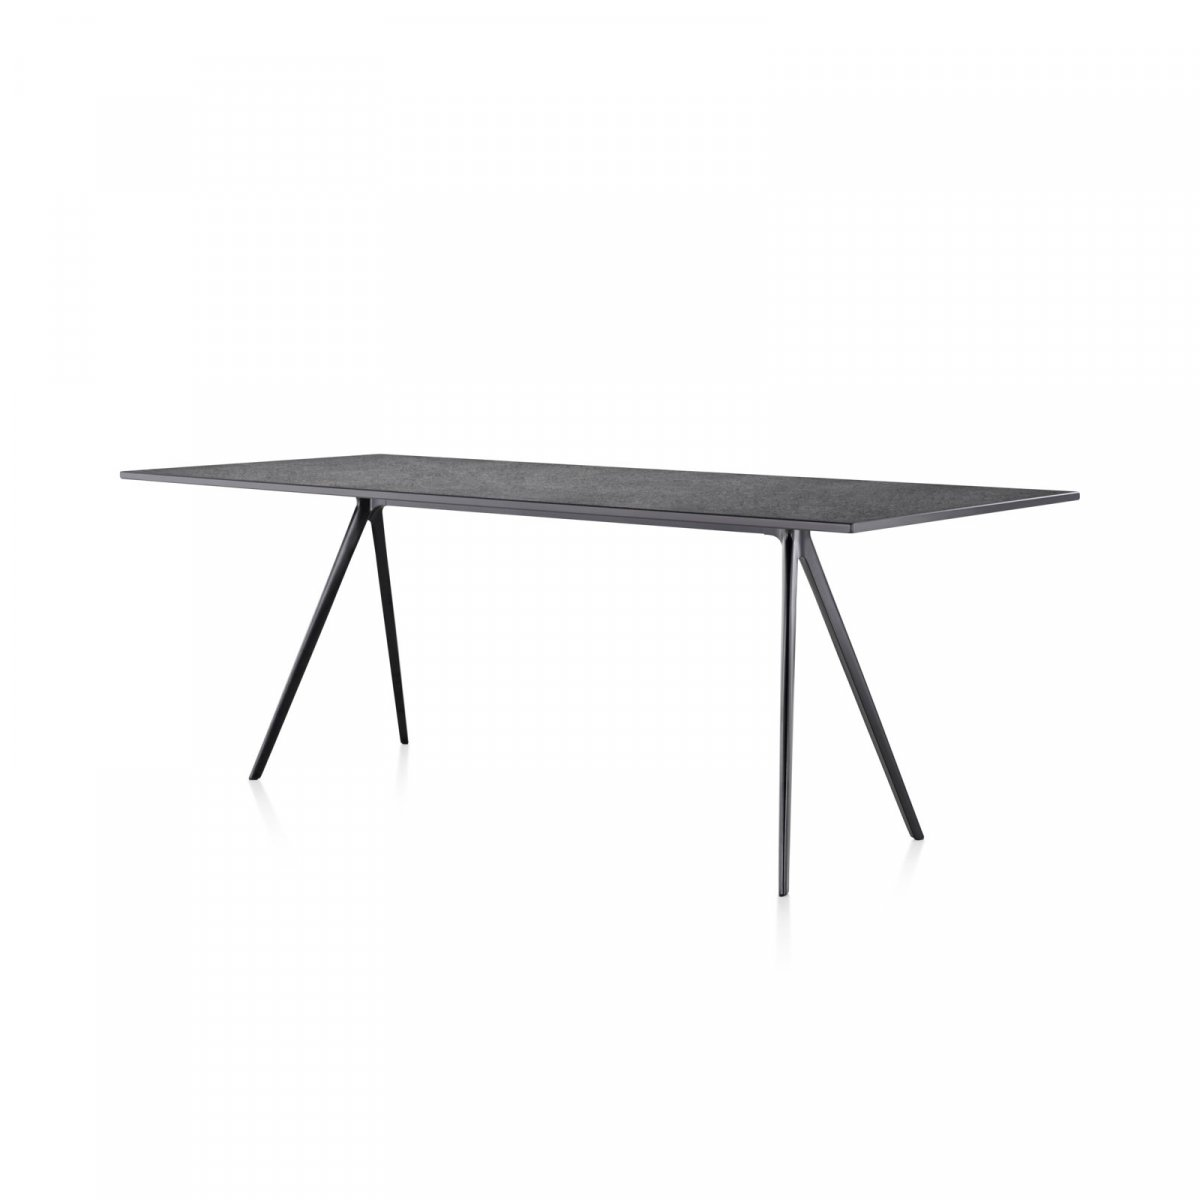 Baguette dining table, black.